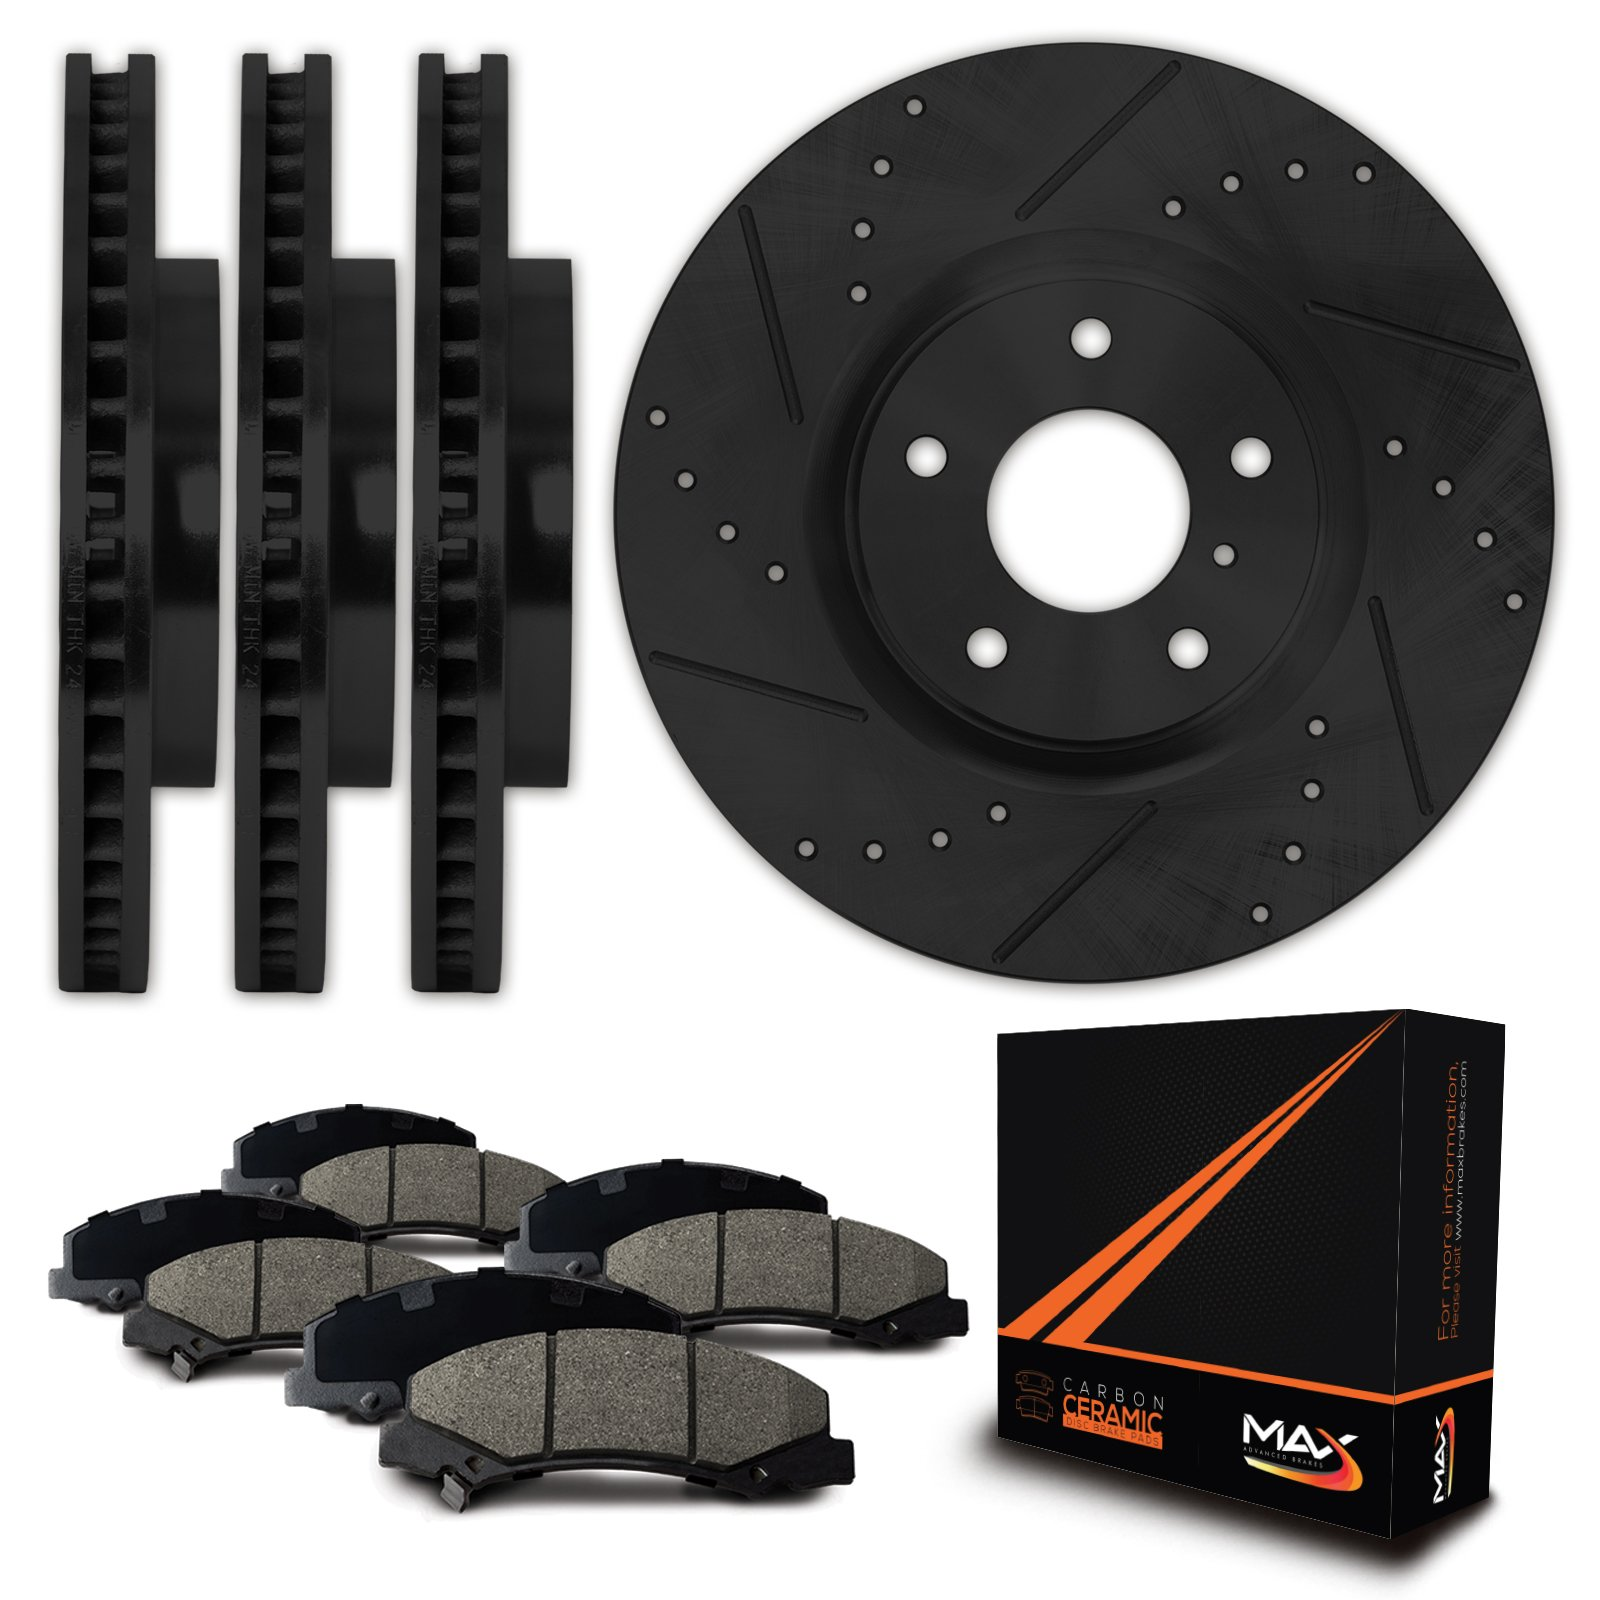 Max KT008983 [ELITE SERIES] Front + Rear Performance Slotted & Cross Drilled Rotors and Ceramic Pads Combo Brake Kit by Max Advanced Brakes